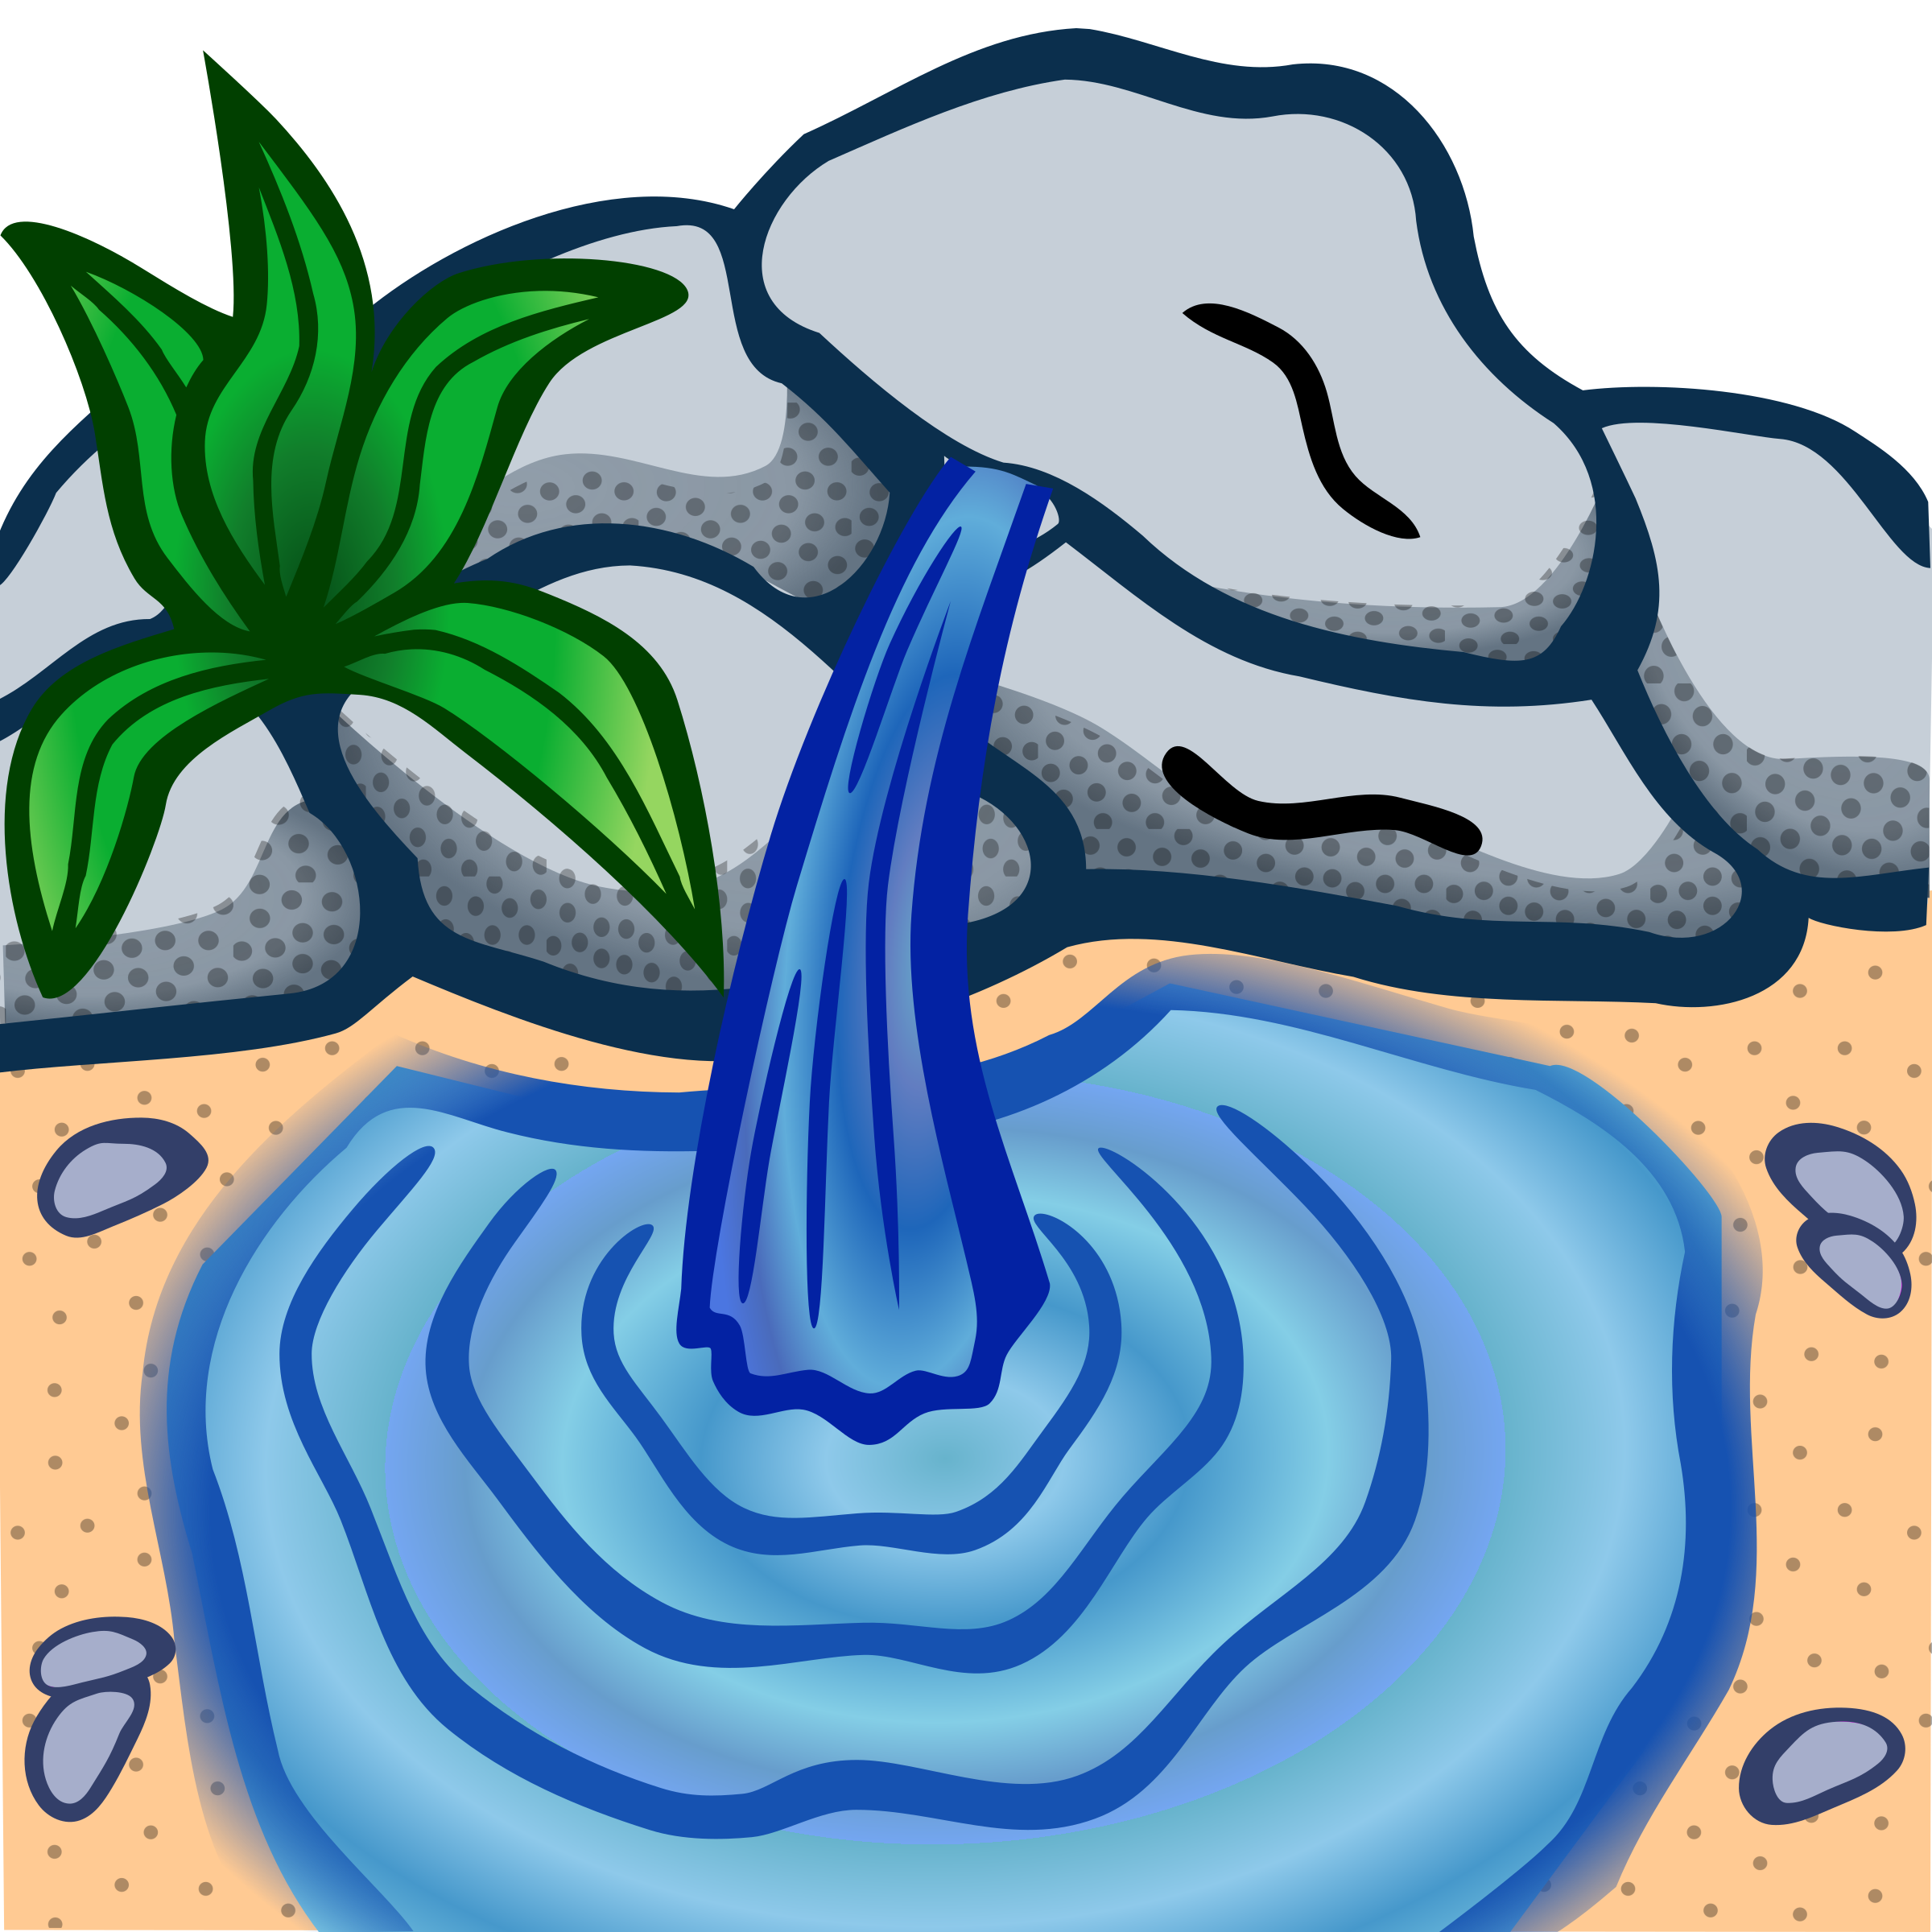 Picture clipart water, Picture water Transparent FREE for.